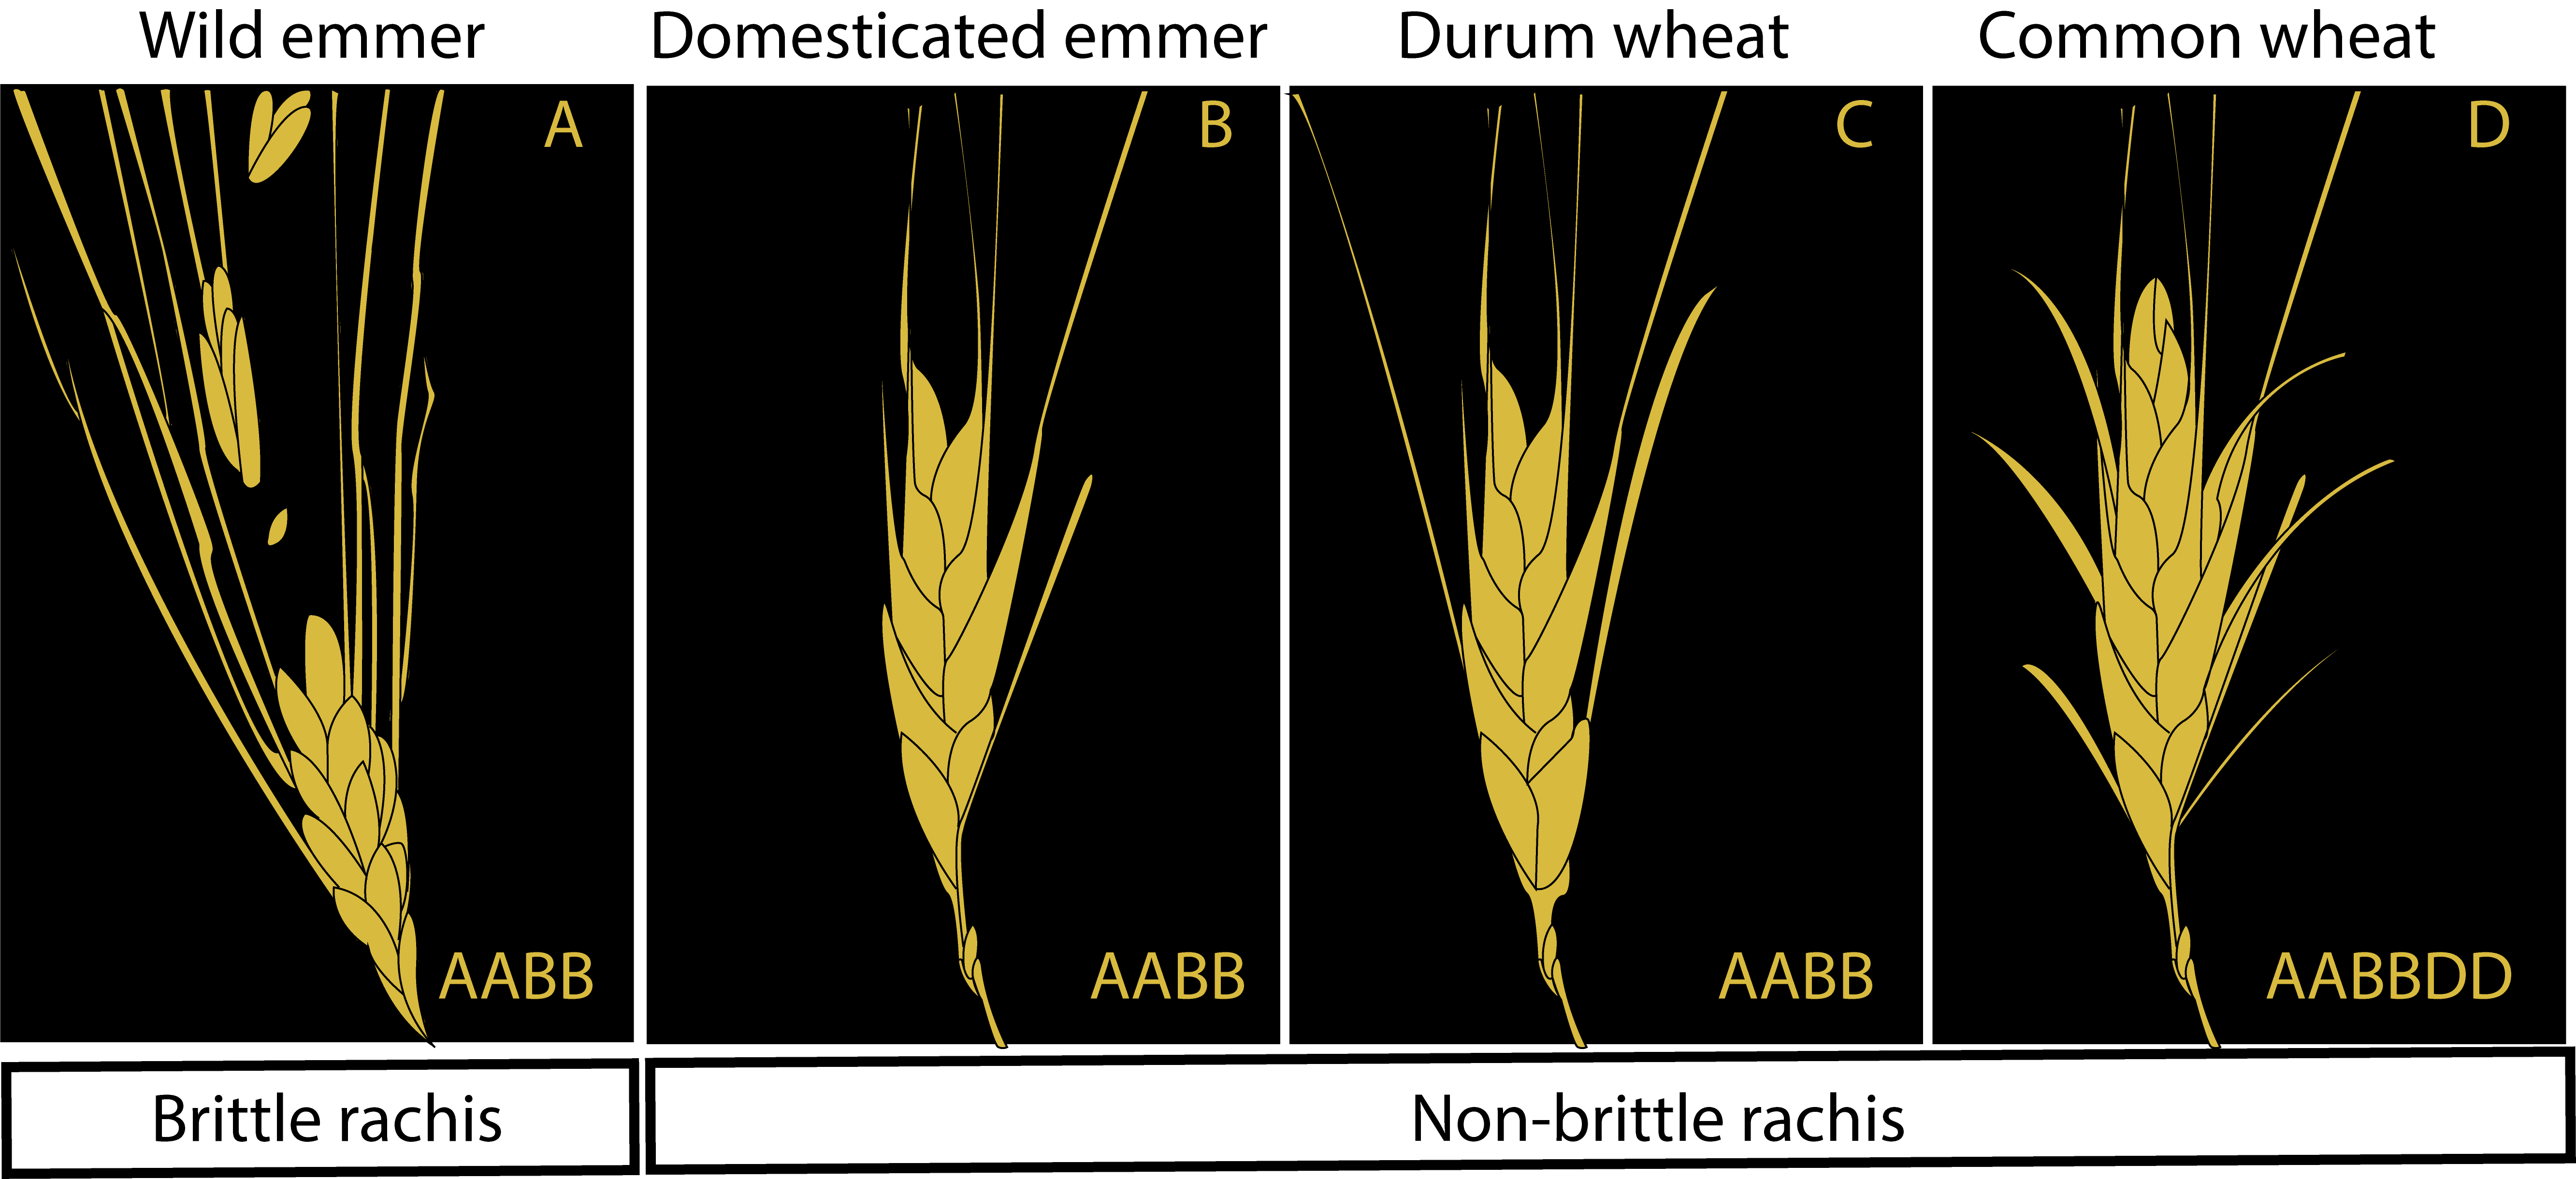 Mature seeds of the domesticated wheat species do not shatter.